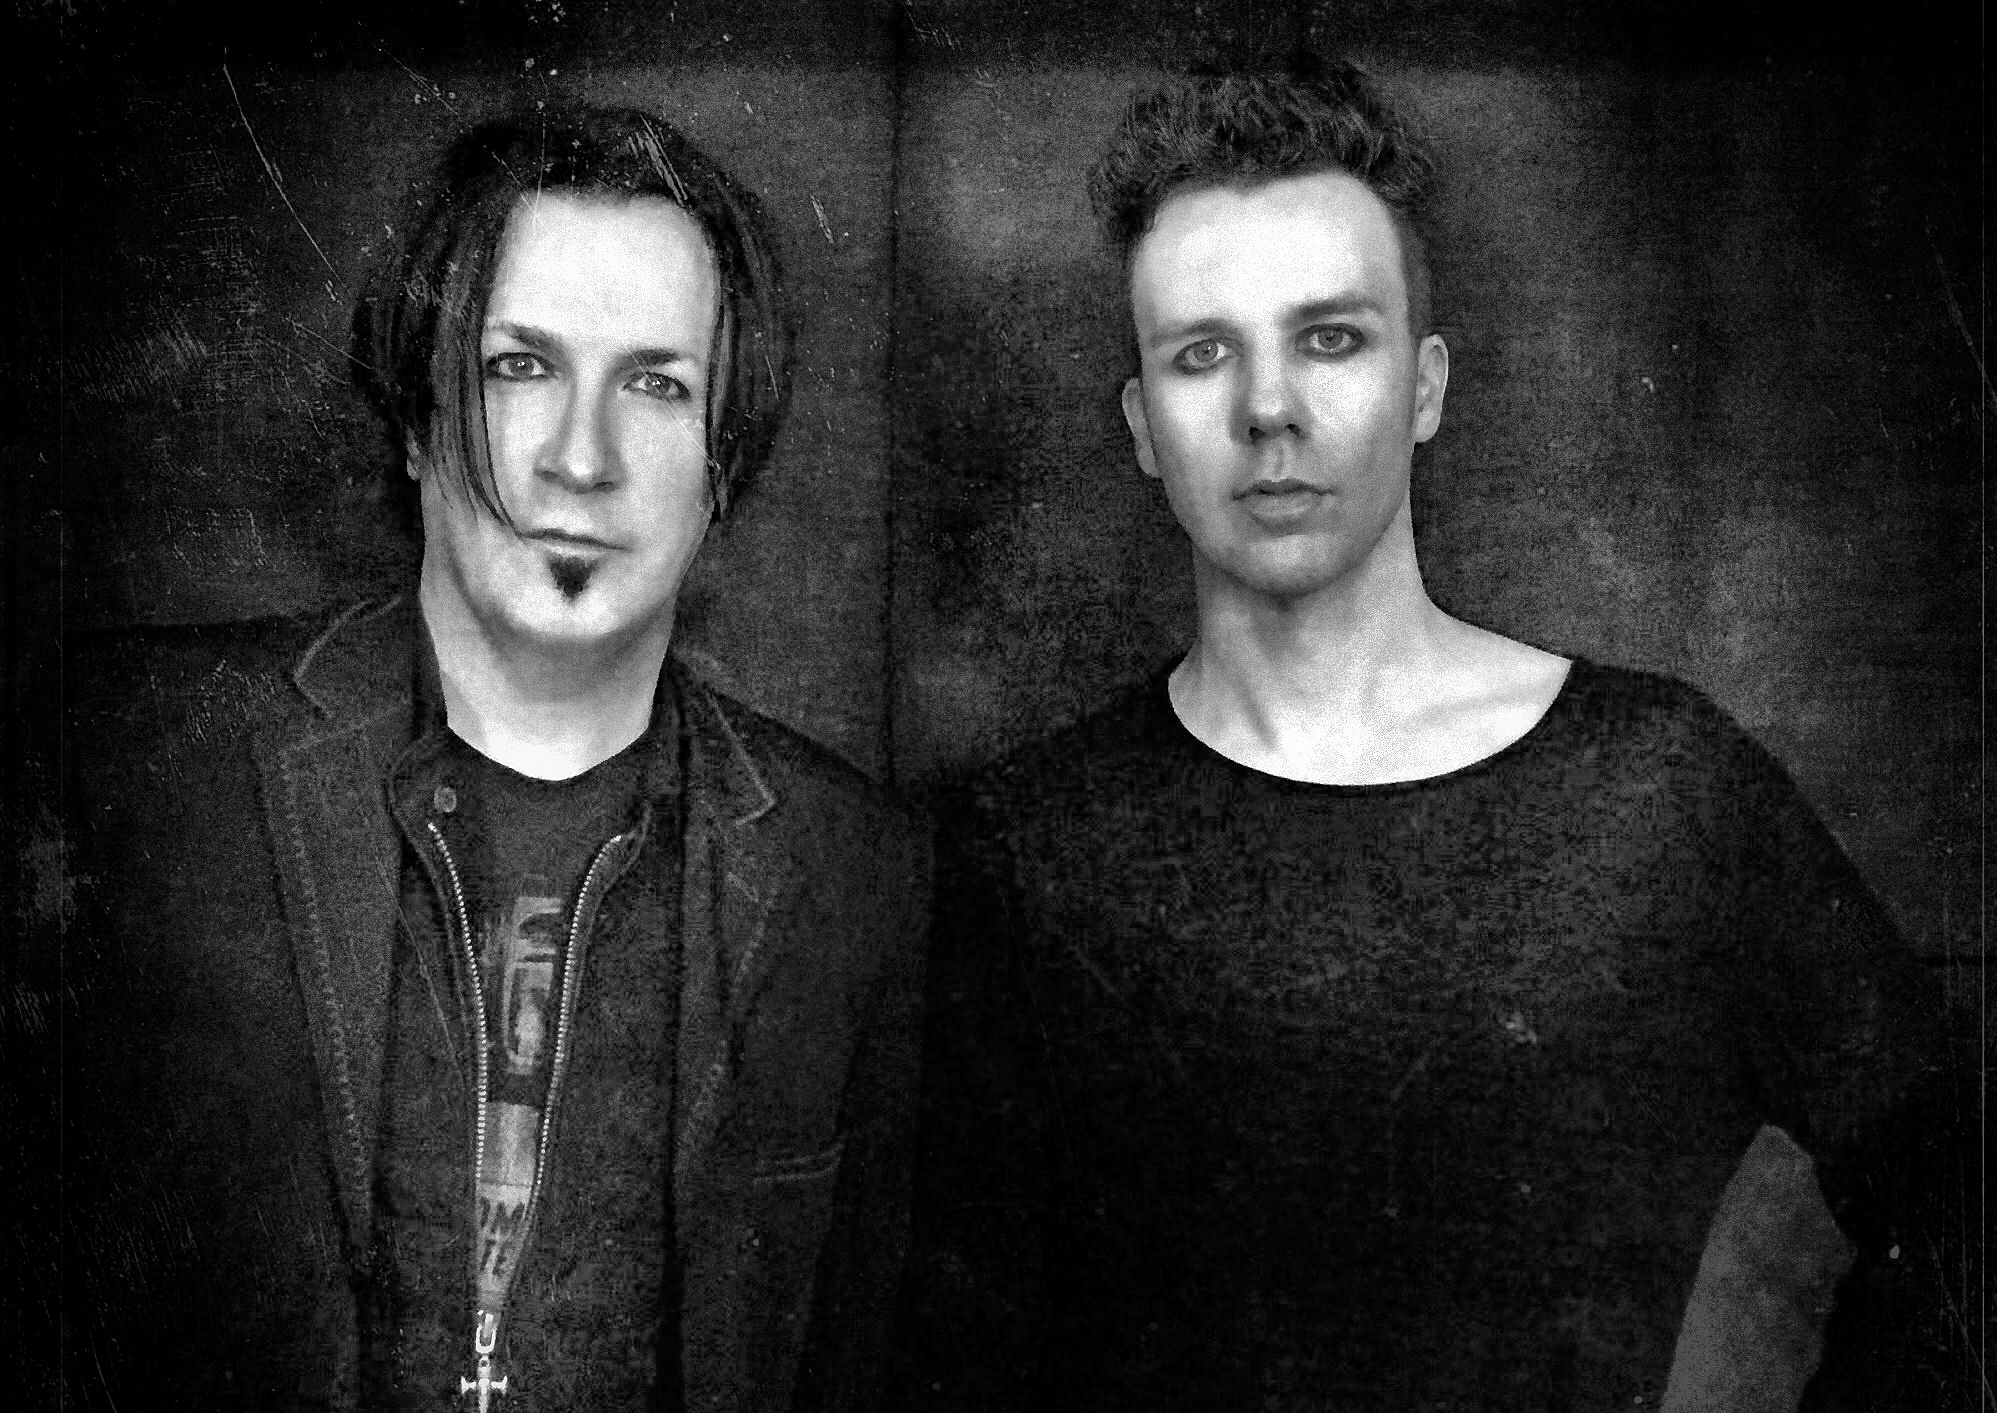 Interview with MGT and Ashton Nyte, Mark Gemini Thwaite, MGT, gothic rock, industrial metal, alternative rock, alternative metal, Gemini Nyte, Ashton Nyte, The Awakening, The Mission, Tricky, Peter Murphy, New Disease, Spear of Destiny, Theatre of Hate, Mob Research, Velvet, Cleopatra Records, Secret Service Publicity, Secret Service PR, Austin Griswold, sickandsound, gothic rock album review, MGT Gemini Nyte review, MGT Gemini Nyte recensione, latest album by MGT, latest album by Mark Gemini Thwaite, MGT featuring Ville Valo Knowing Me Knowing You, Volumes, All The Broken Things, Every Little Dream, Dystopia, Trading Faces, Everything Undone, The Reaping Reprise, Say Hello Wave Goodbye, The Assembly Line, Armageddons Sideshow, Tear The Sun, Waiting For A Sign, Hyde Your Secret, Atlanta, Paul Ferguson, Burton C Bell, Lol Tolhurst, Pearl Thompson, upcoming albums on sick and sound, MGT interview, MGT Ashton Nyte interview, Interview with MGT and Ashton Nyte